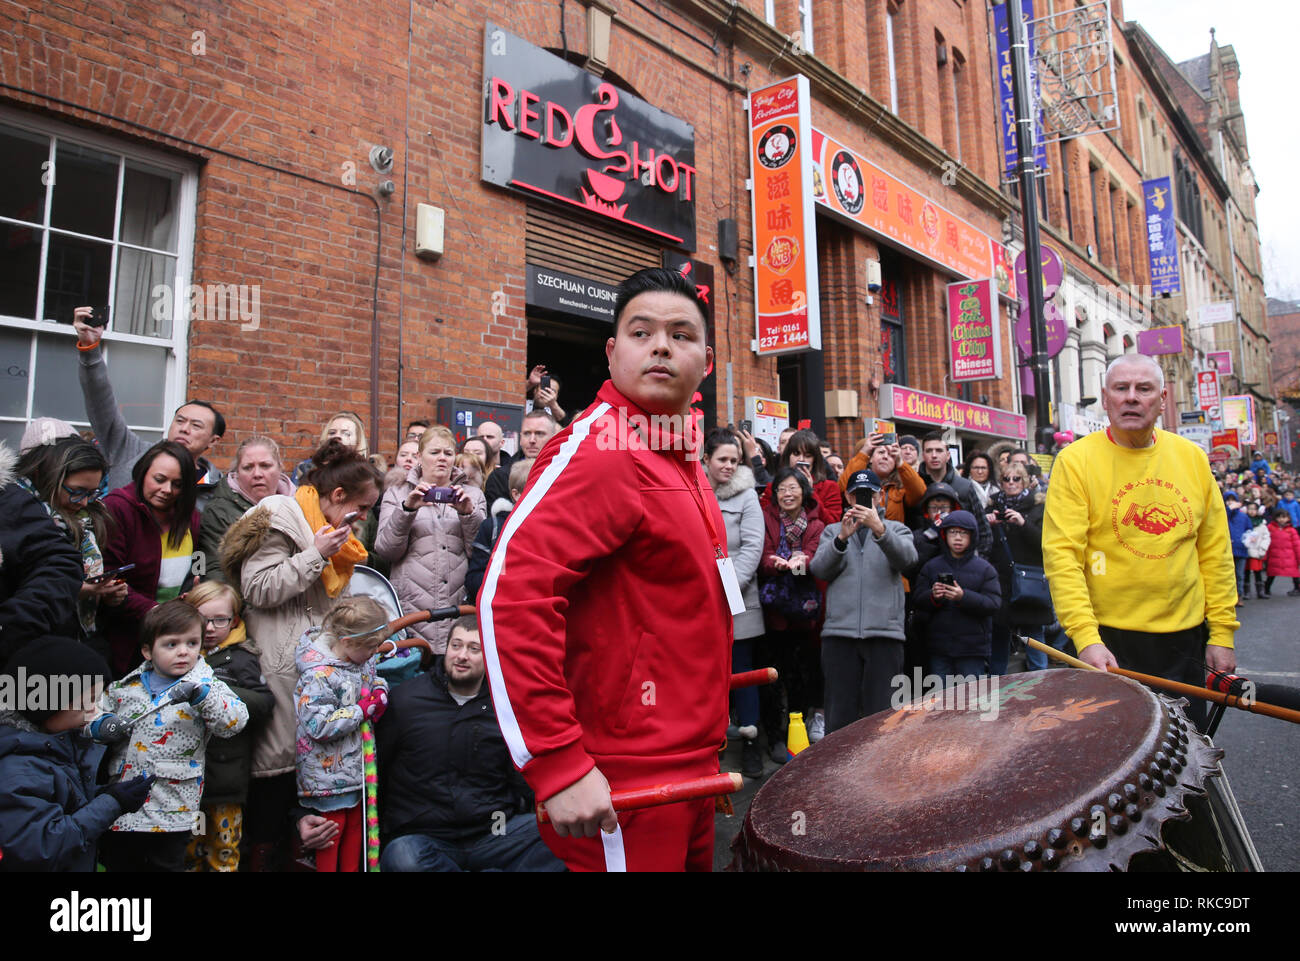 Manchester, UK. 10th Feb 2019. Thousands celebrate Chinese New Year in the city with Dragons, Lion dancing and giant inflatables in the year of the Pig, Manchester, UK, 10th February 2019 Credit: Barbara Cook/Alamy Live News Stock Photo